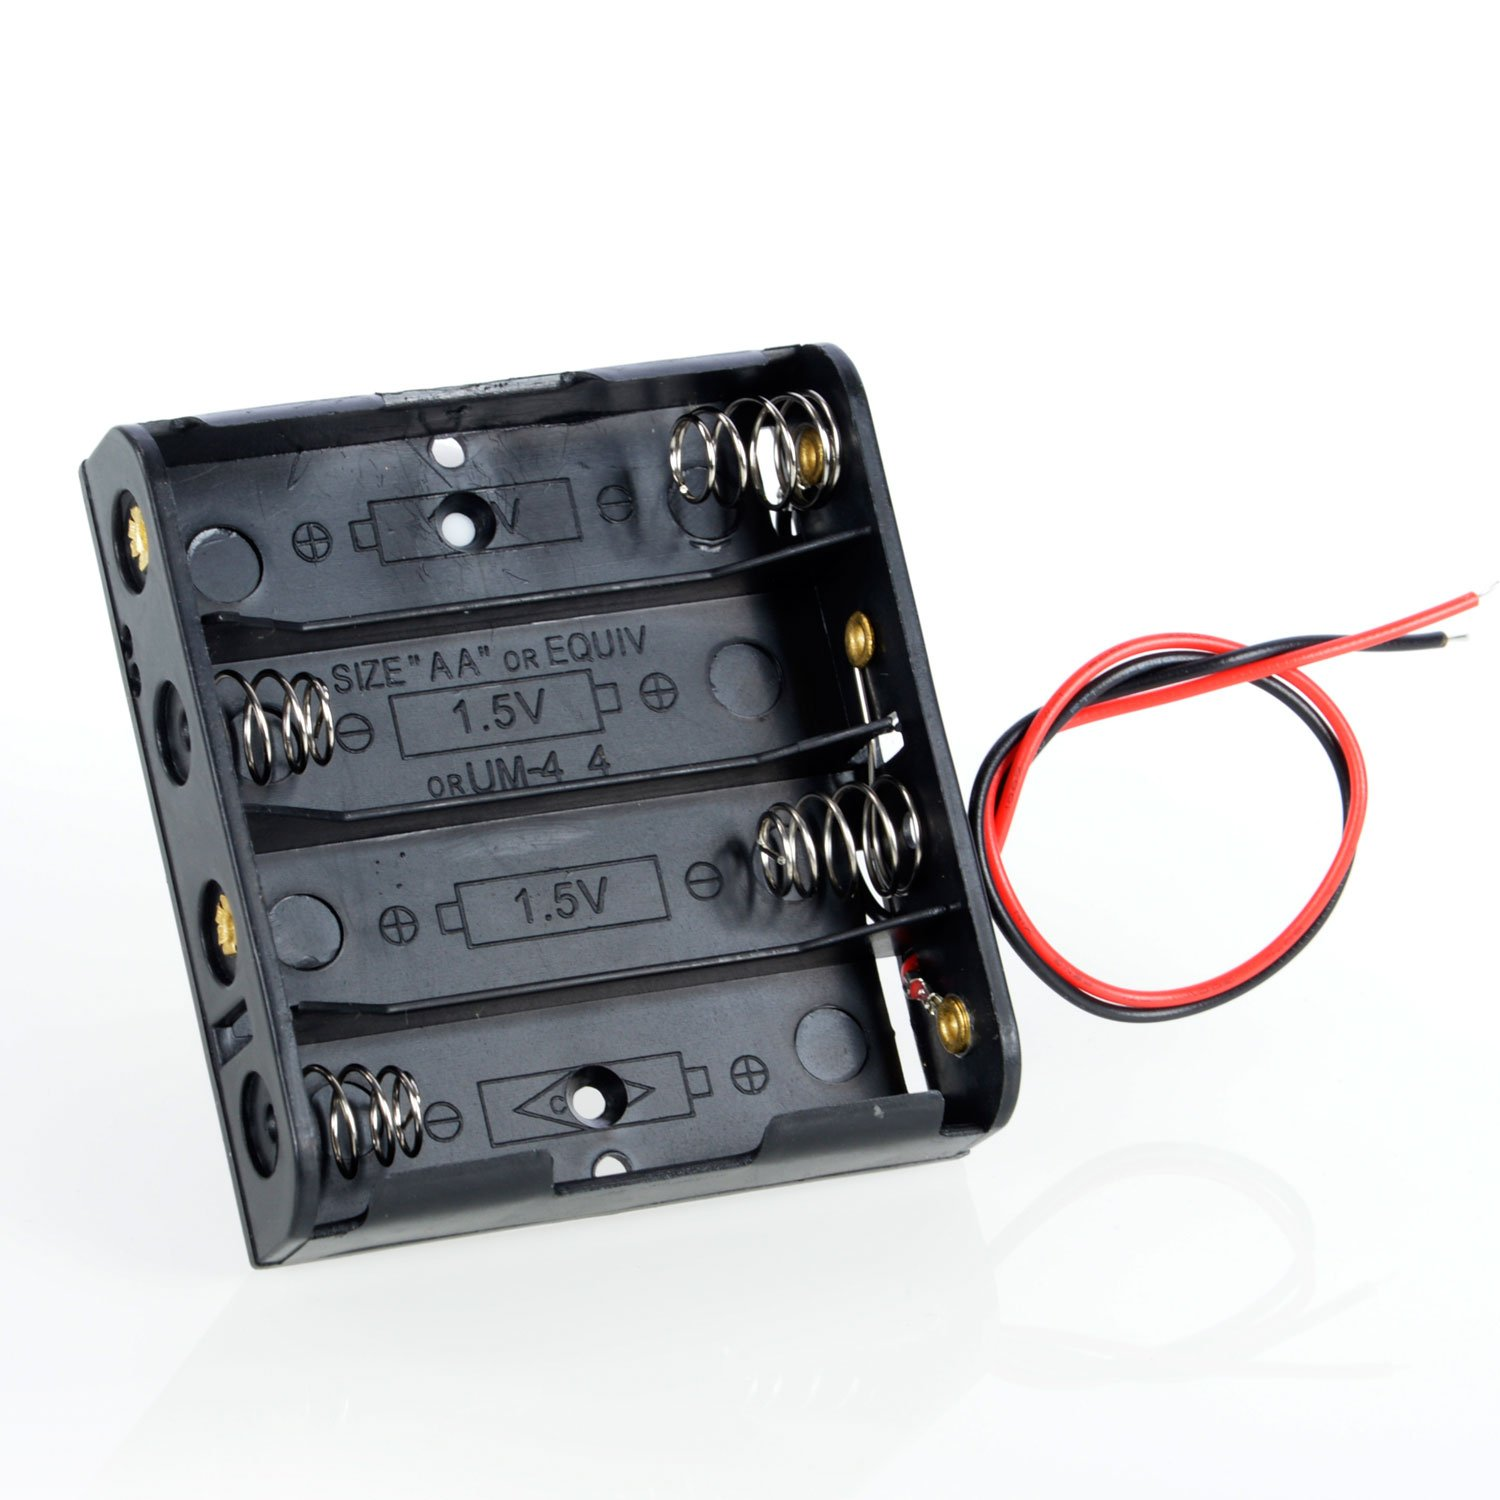 Neuftech High-Quality AA Four Sections on The 5th 4 6V Black Plastic Battery Case with Two Cables EU-BAT Case 4AA-6V